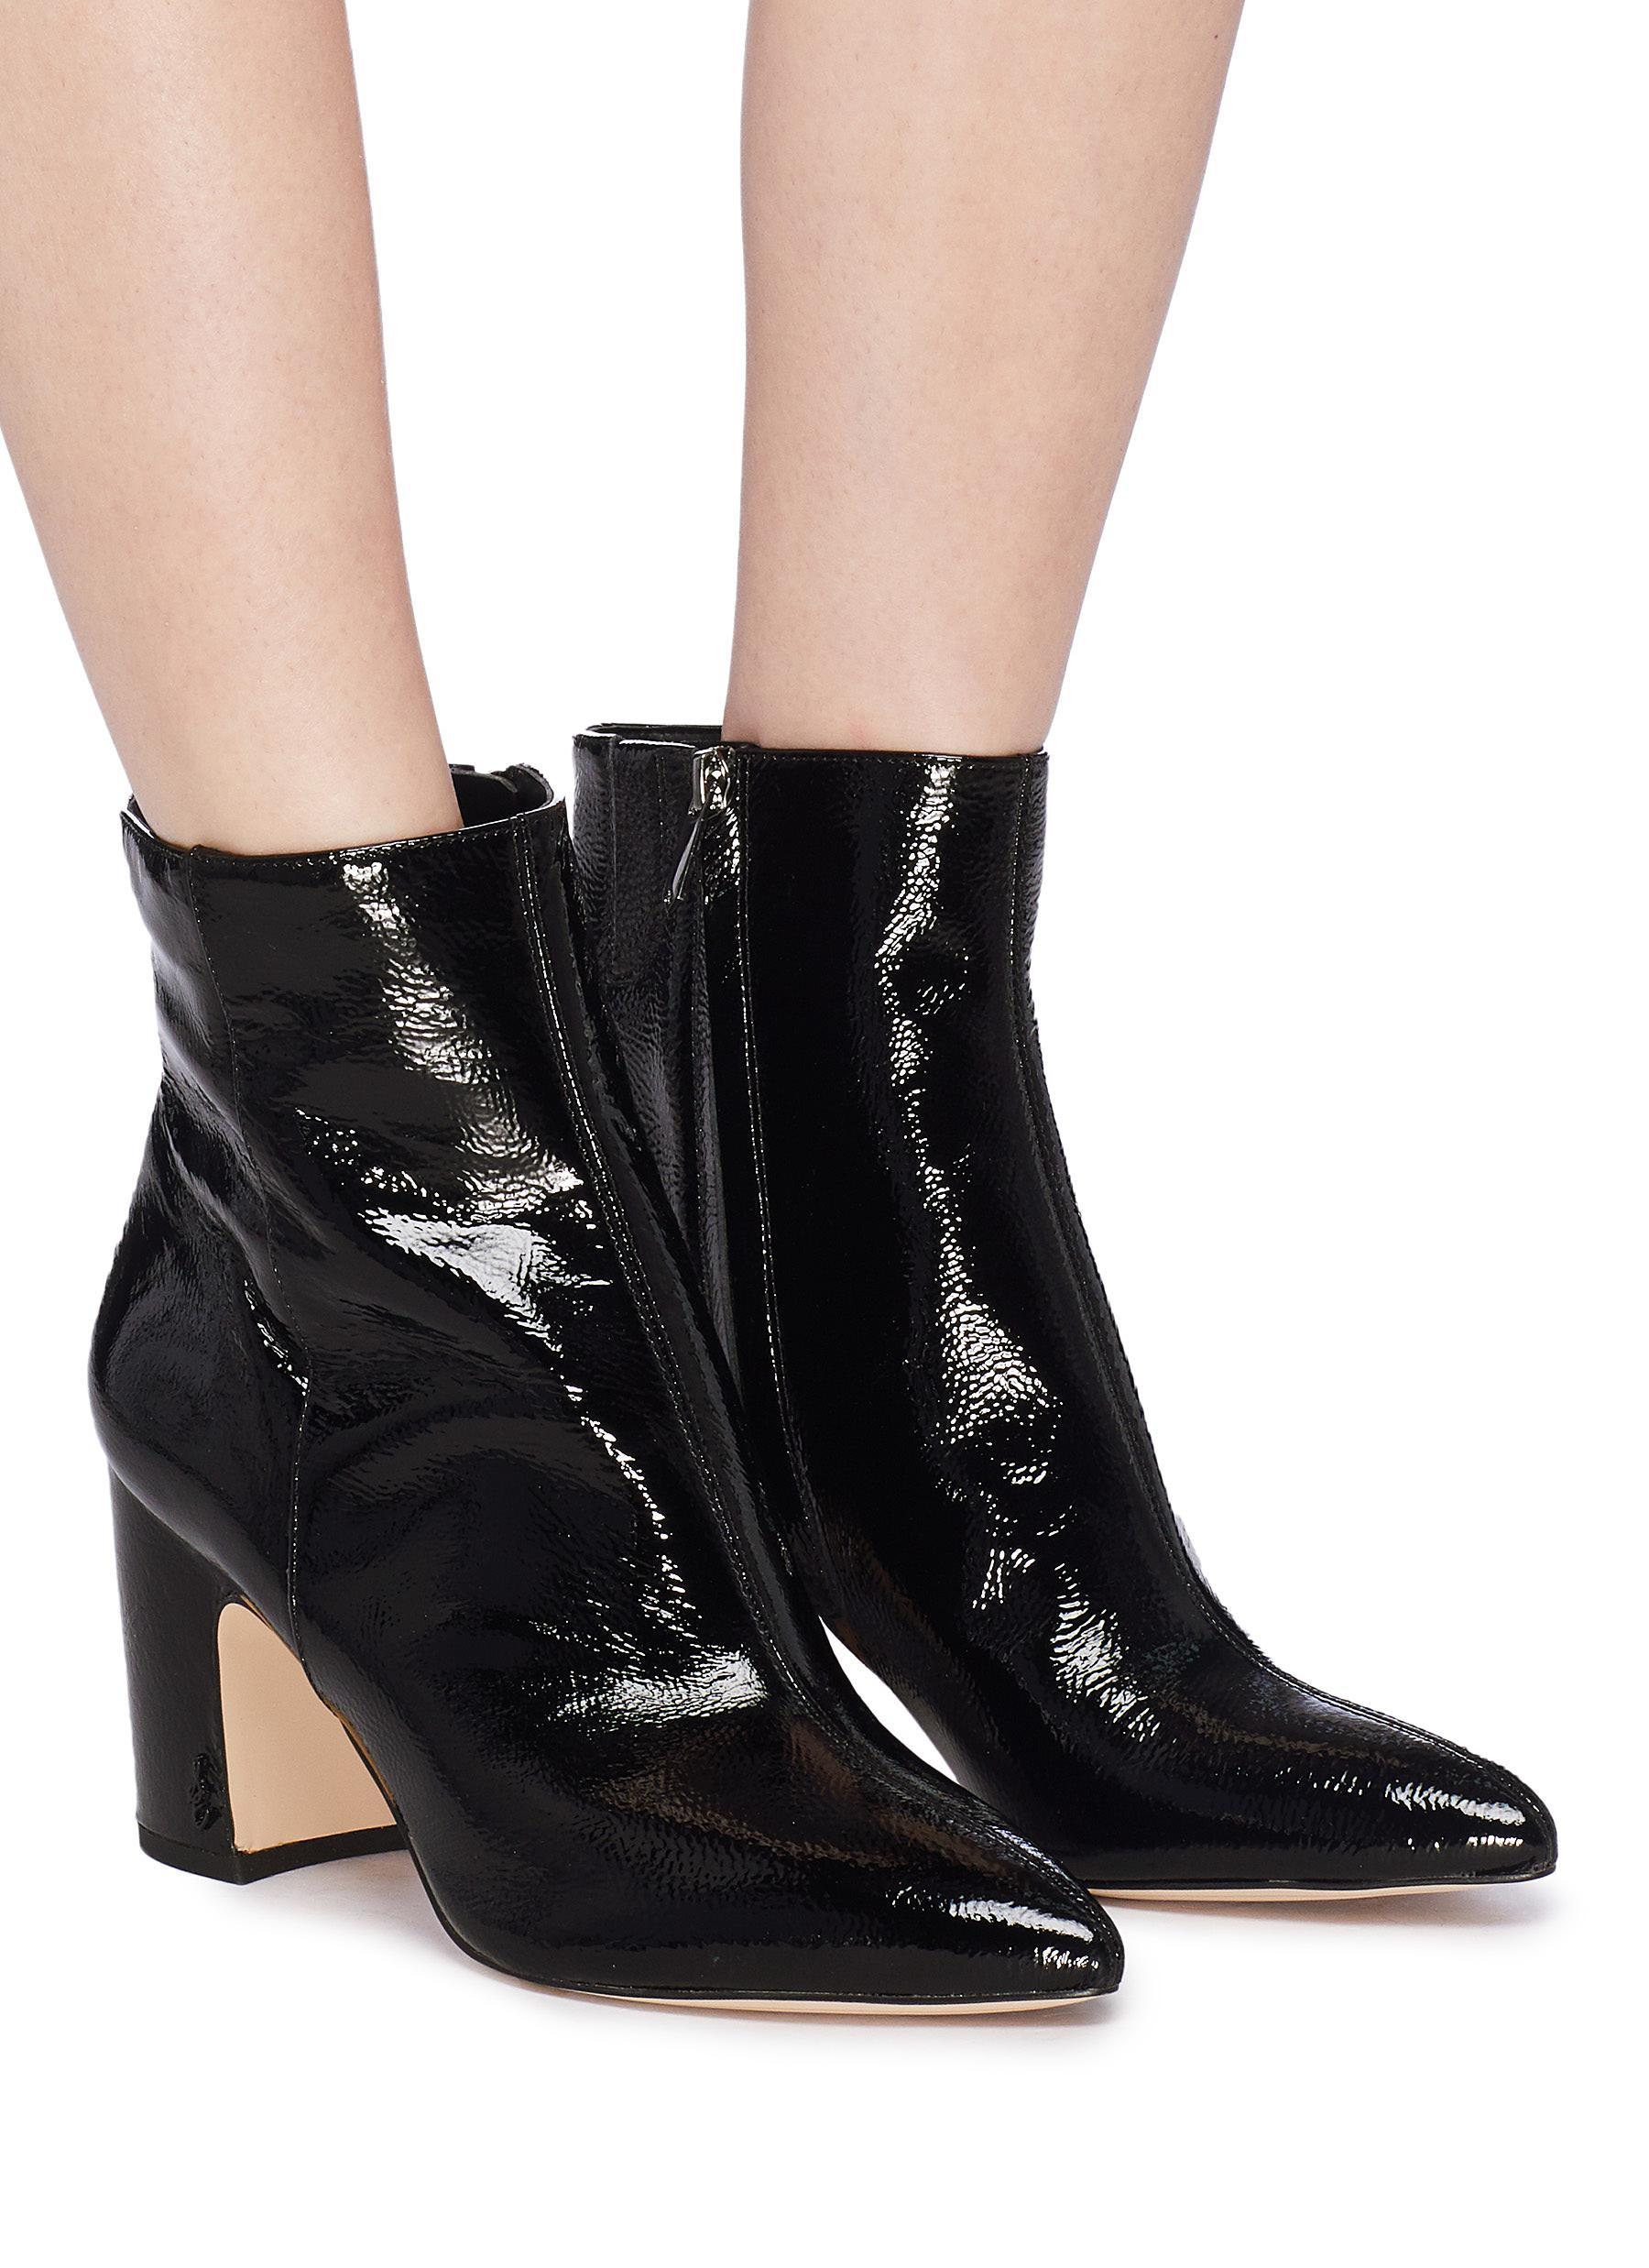 efd59868e45a Lyst - Sam Edelman  hilty  Crinkled Patent Leather Ankle Boots in Black